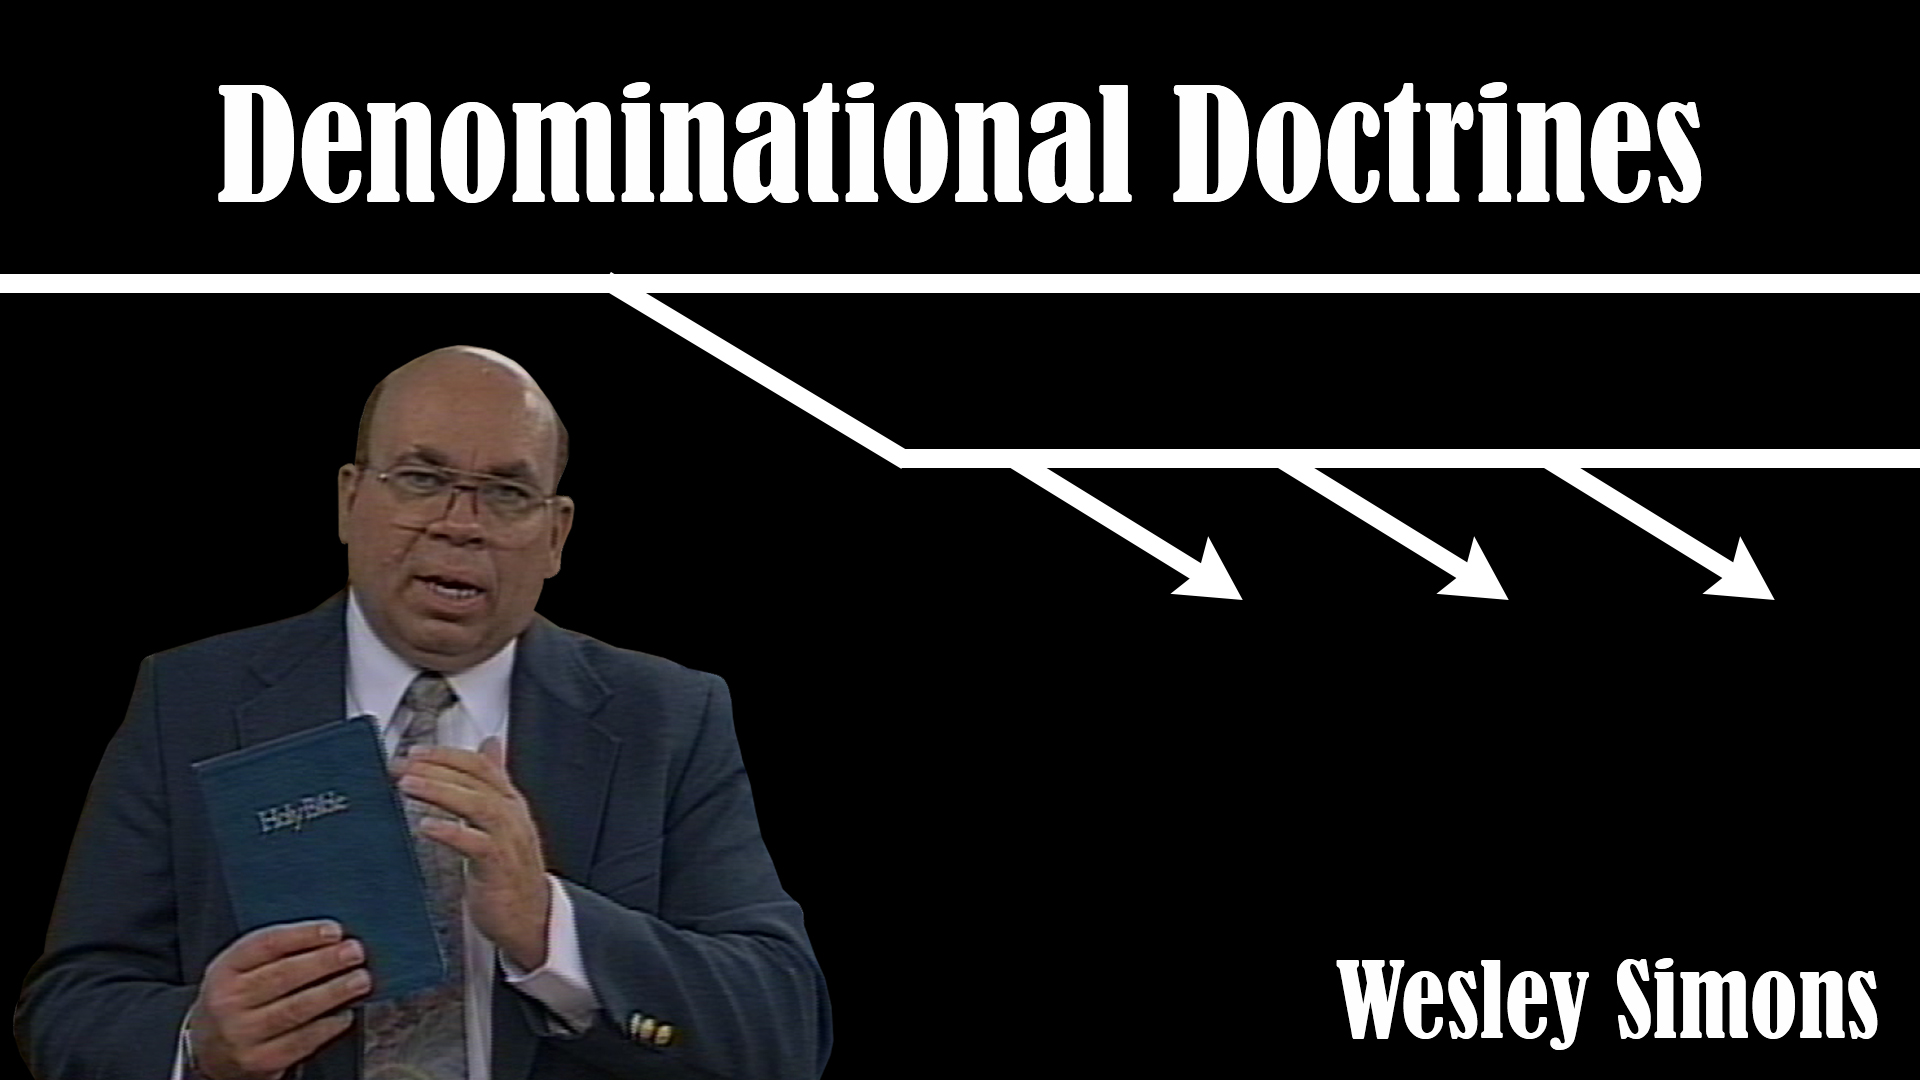 Denominational Doctrines